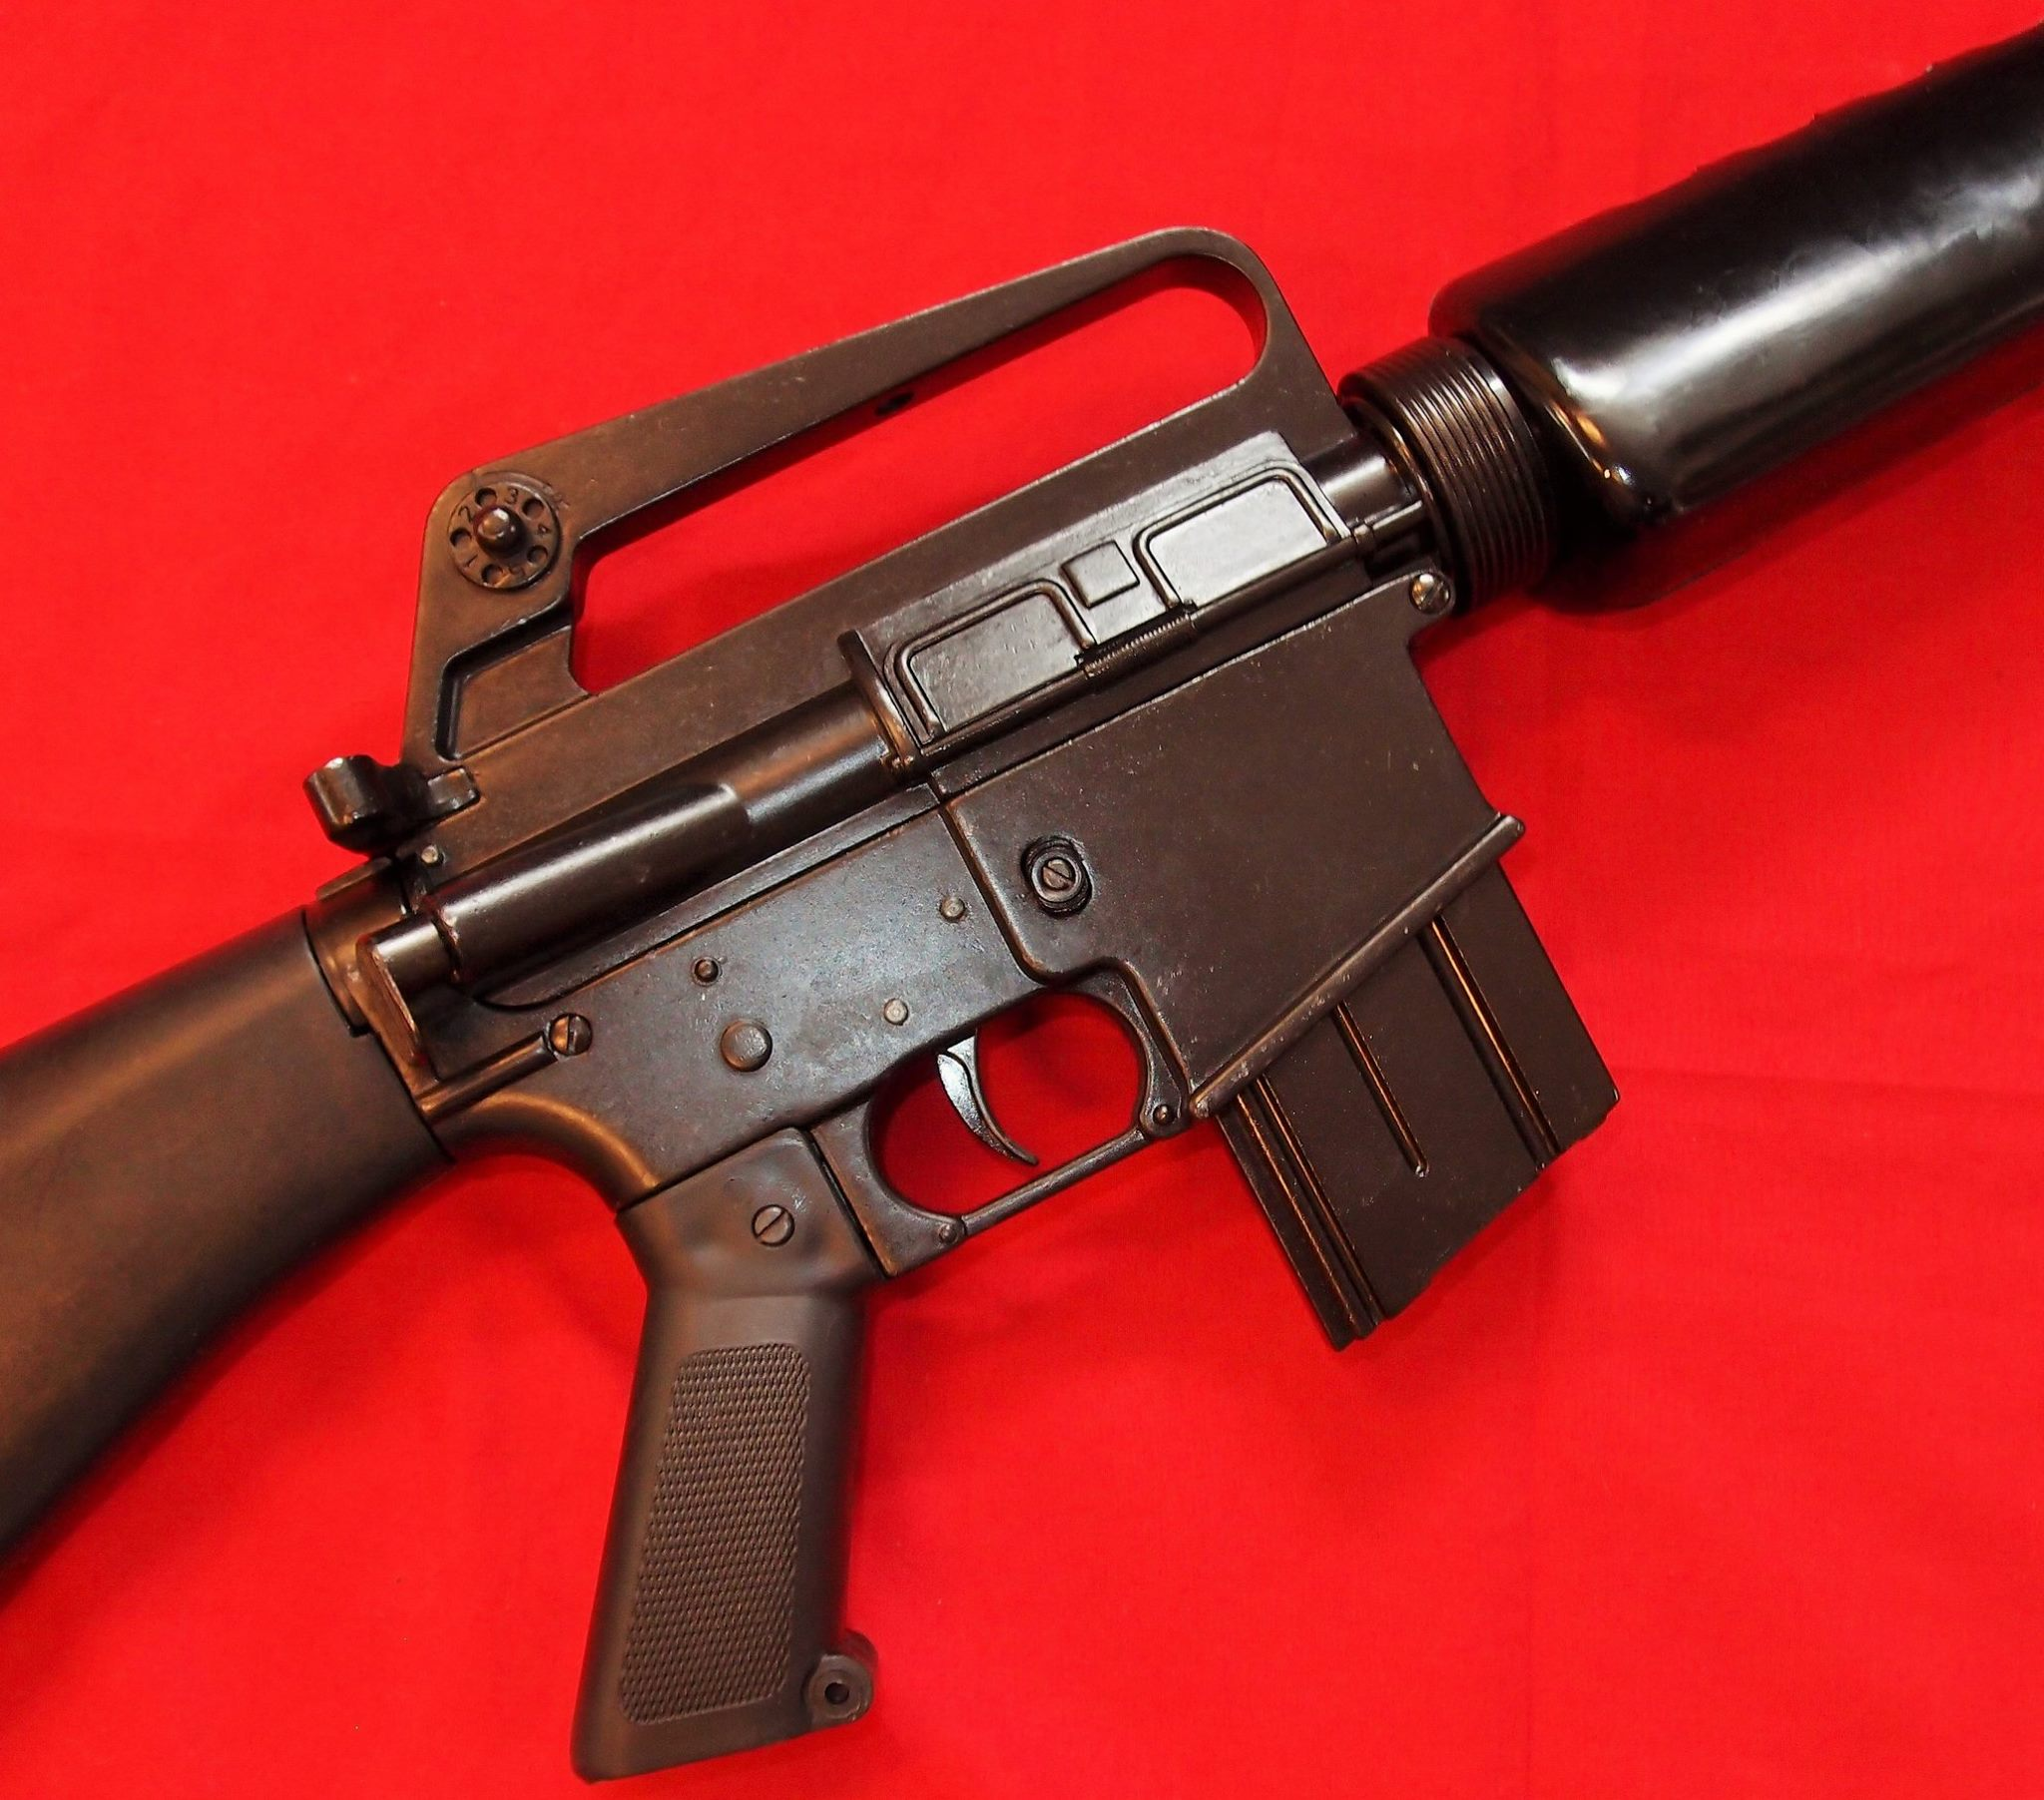 REPLICA M16 US ASSAULT RIFLE DENIX GUN